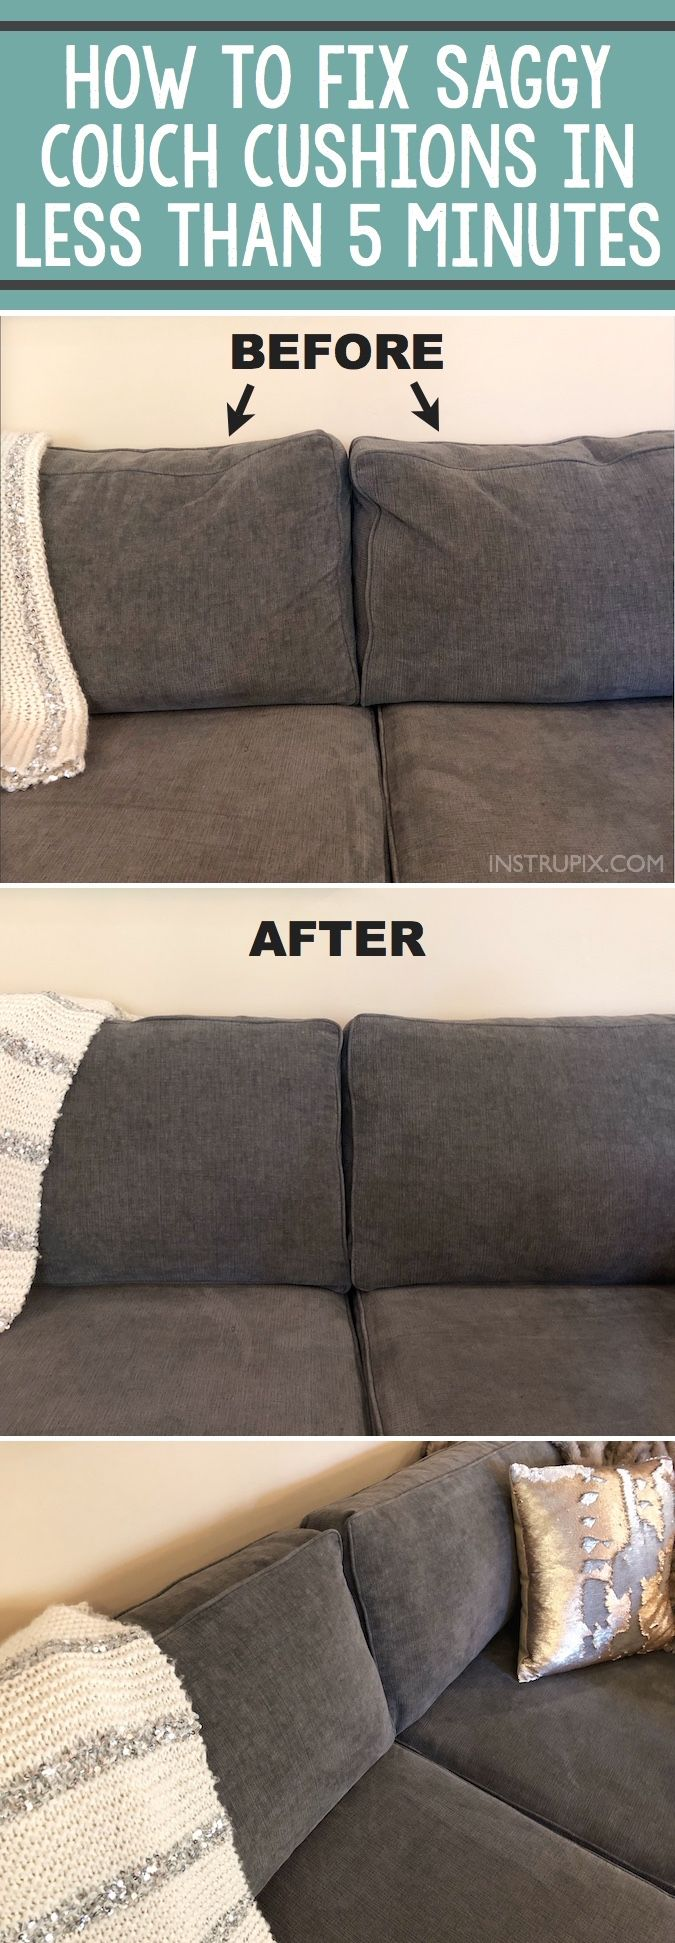 Refurbishing Sofa Cushions | Restuffing Couch Cushions | Sofa Cushion Filling Replacement